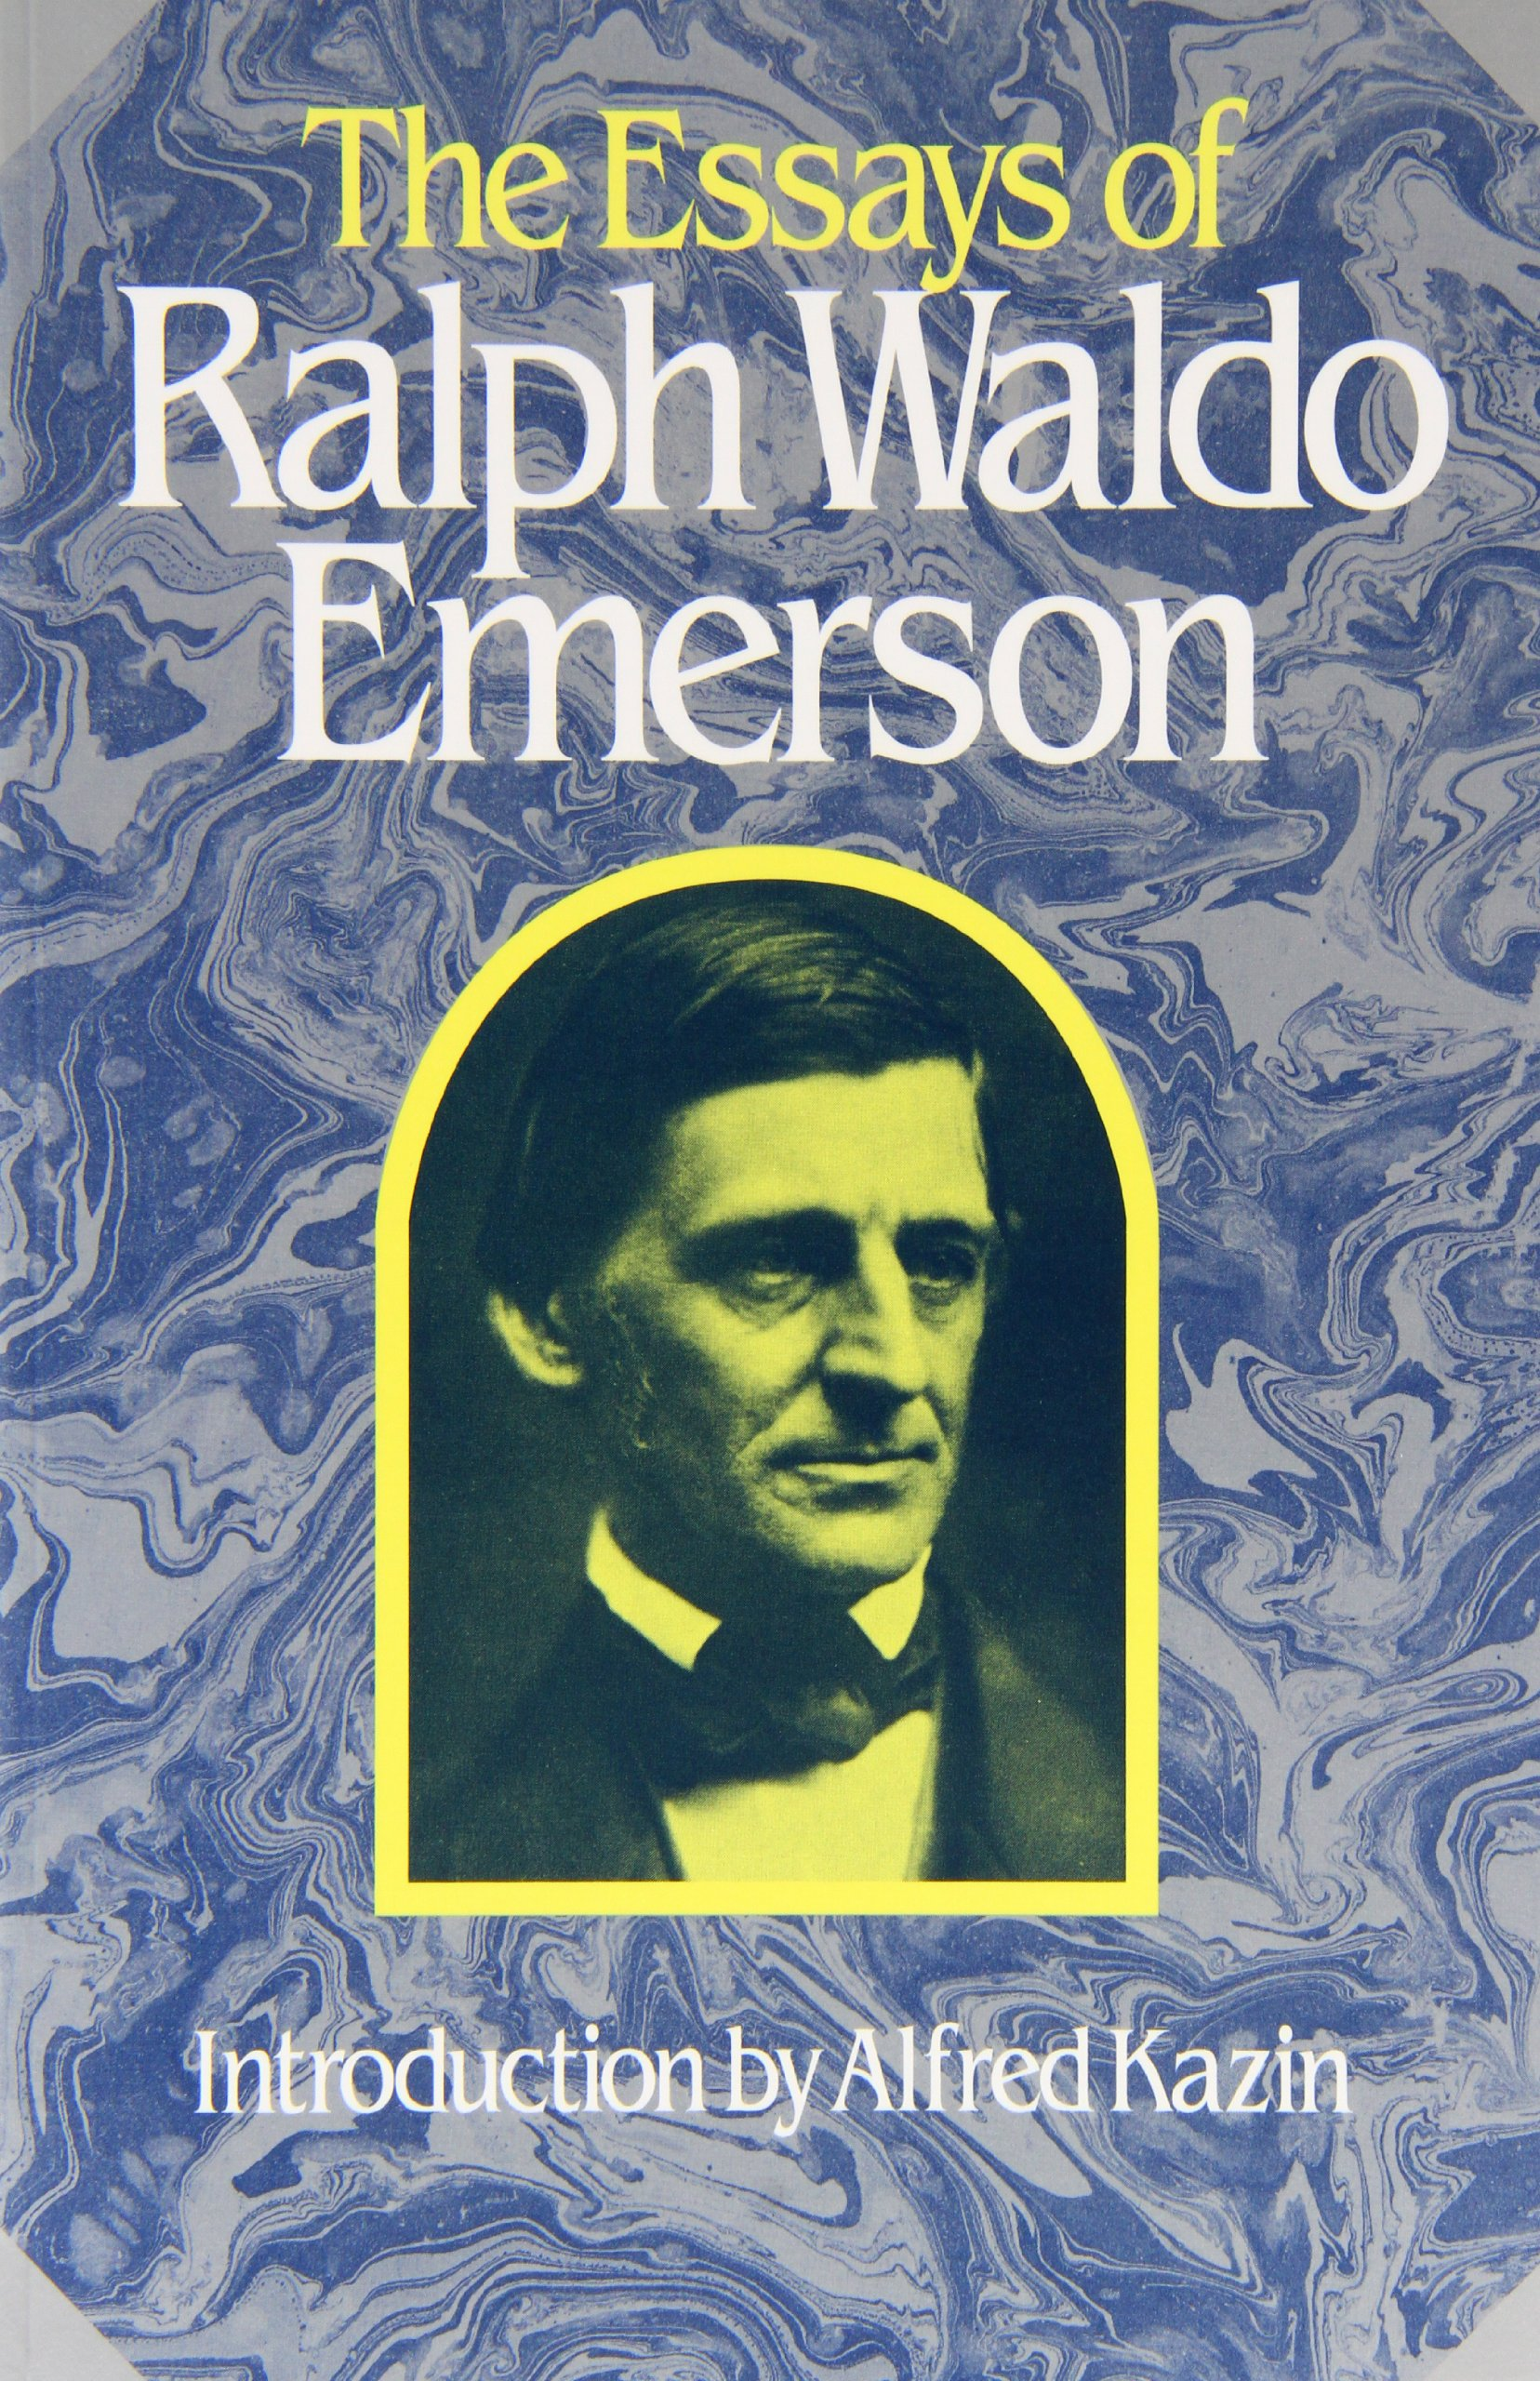 law compensation emerson essay Emerson was a master of the essay form like, if he were in an english class, he's the one all the other students would try to copy off of and indeed, a lot of his most important works are essays.